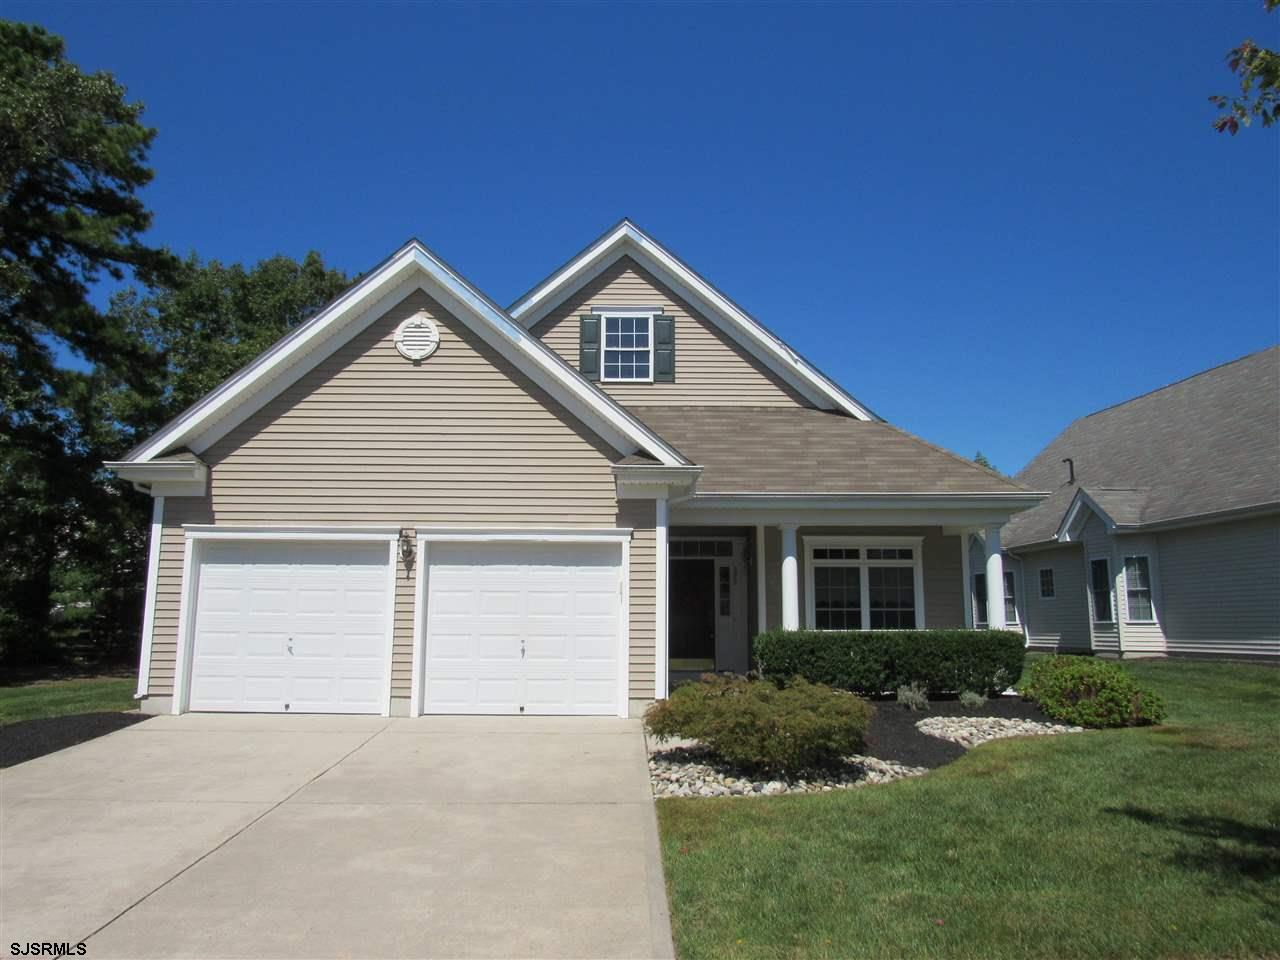 Village Grande @ English Mill, Adult Community. Well maintained 2 Bedroom/2 Bath home is move in ready. Home features1st floor master suite w tray ceiling, walk-in closet. Kitchen w pantry & recessed lighting. In addition, gleaming hardwood floors, new carpet & freshly painted. Great clubhouse & activities for all!